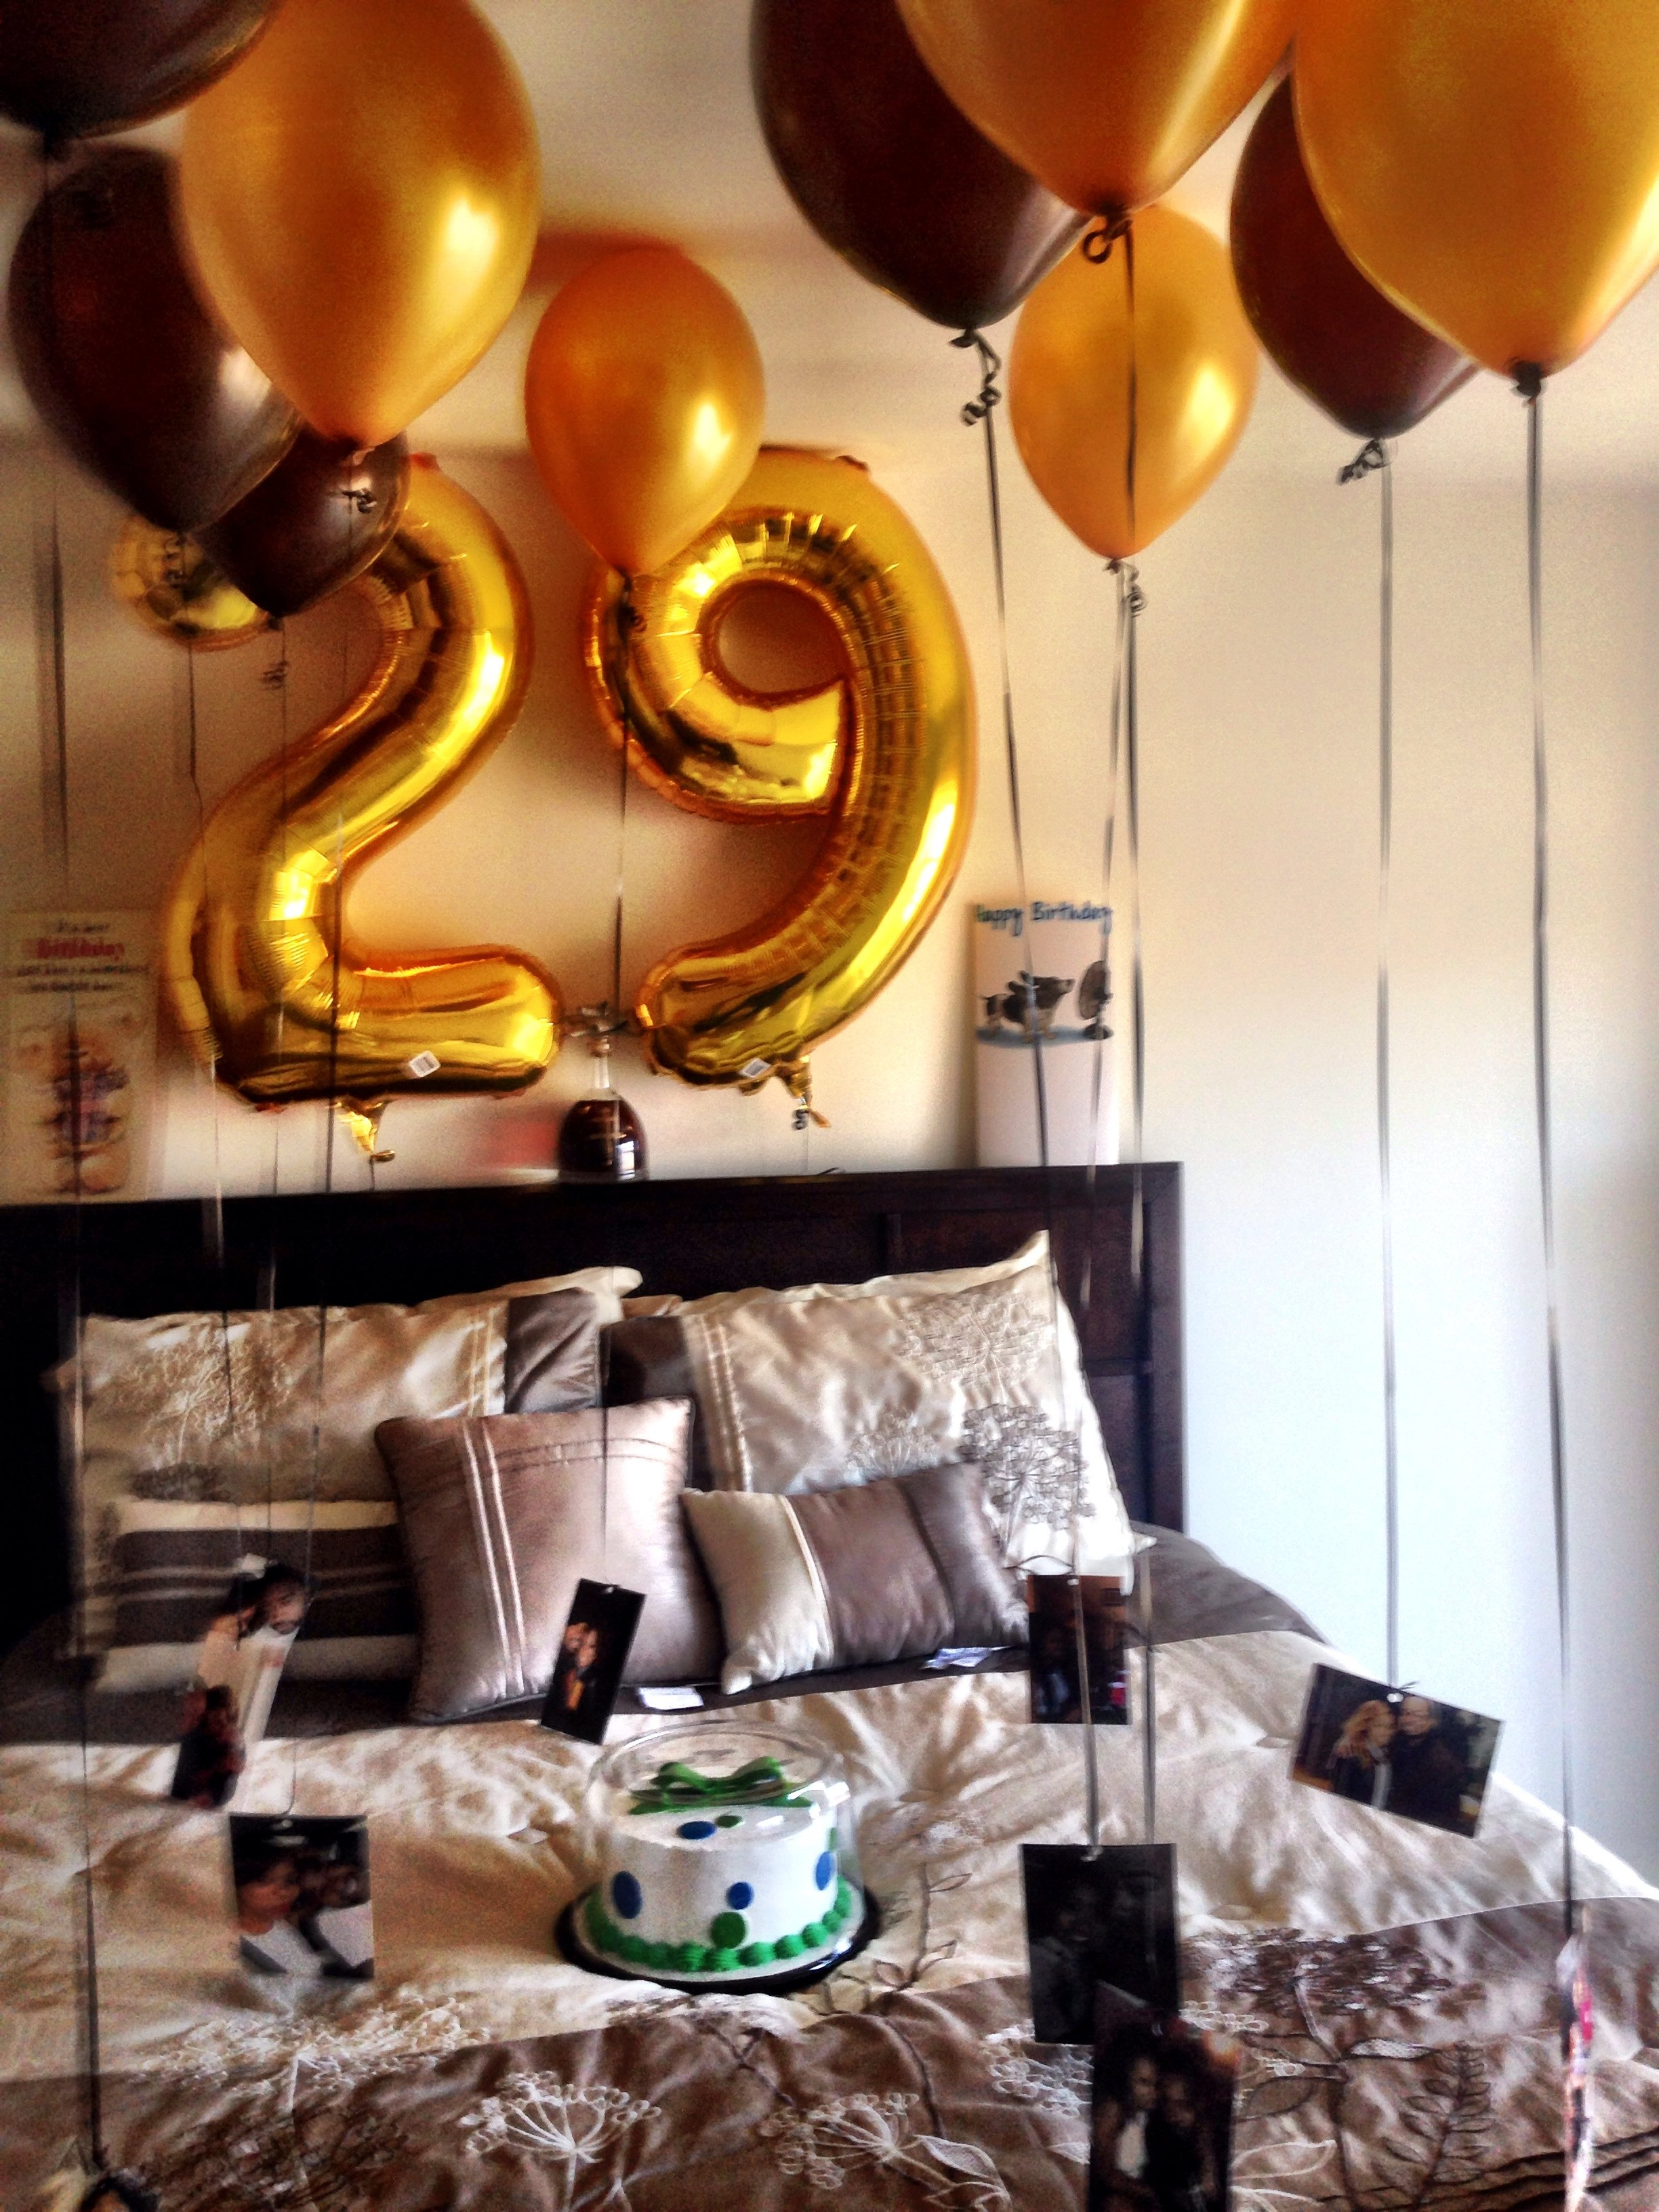 10 Wonderful Birthday Surprise Ideas For Boyfriend Boyfriends Birthdays